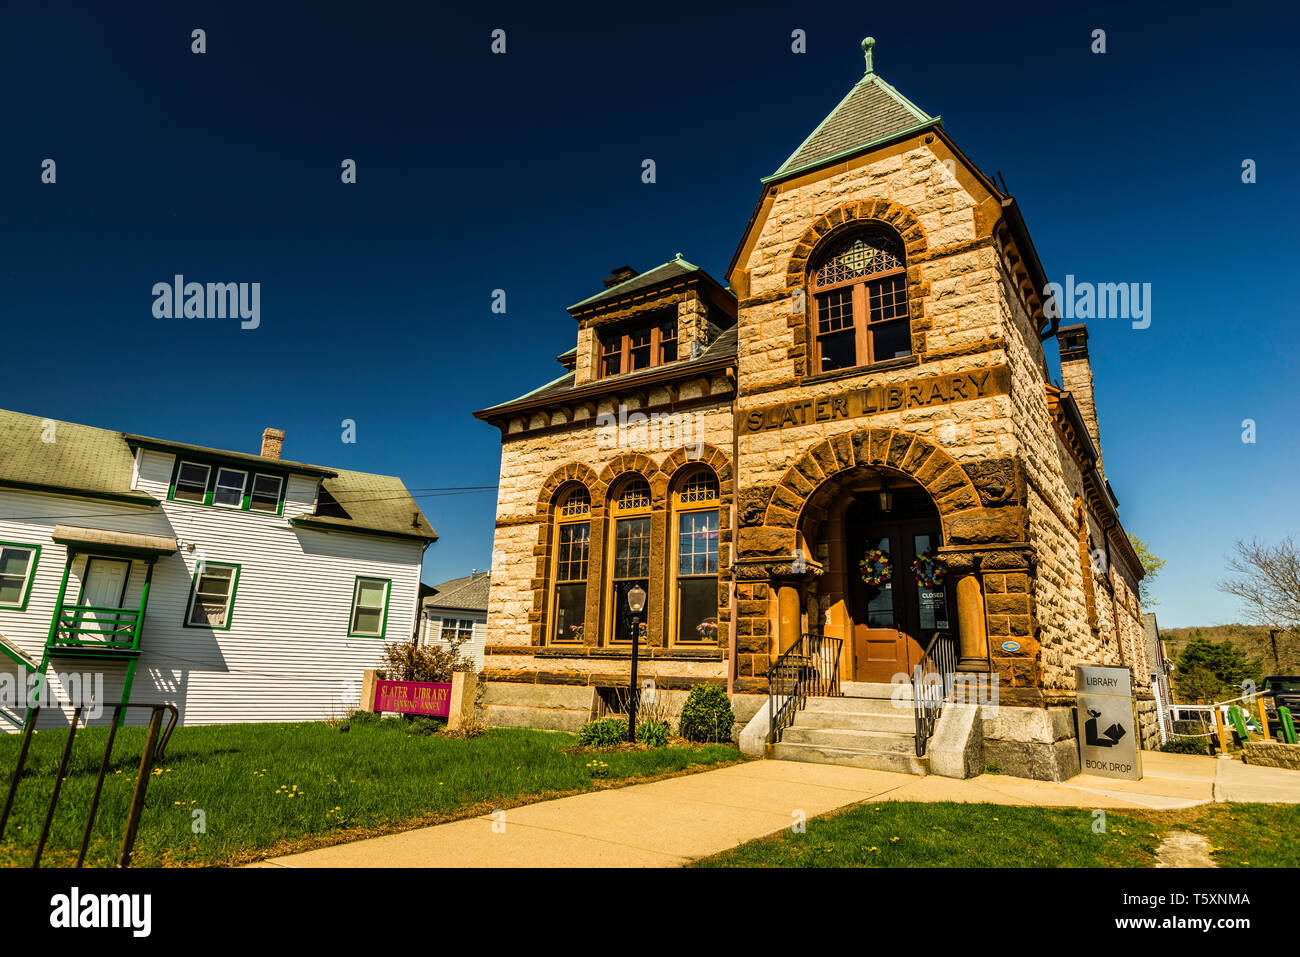 Slater Library _ Griswold, Connecticut, USA - Stock Image